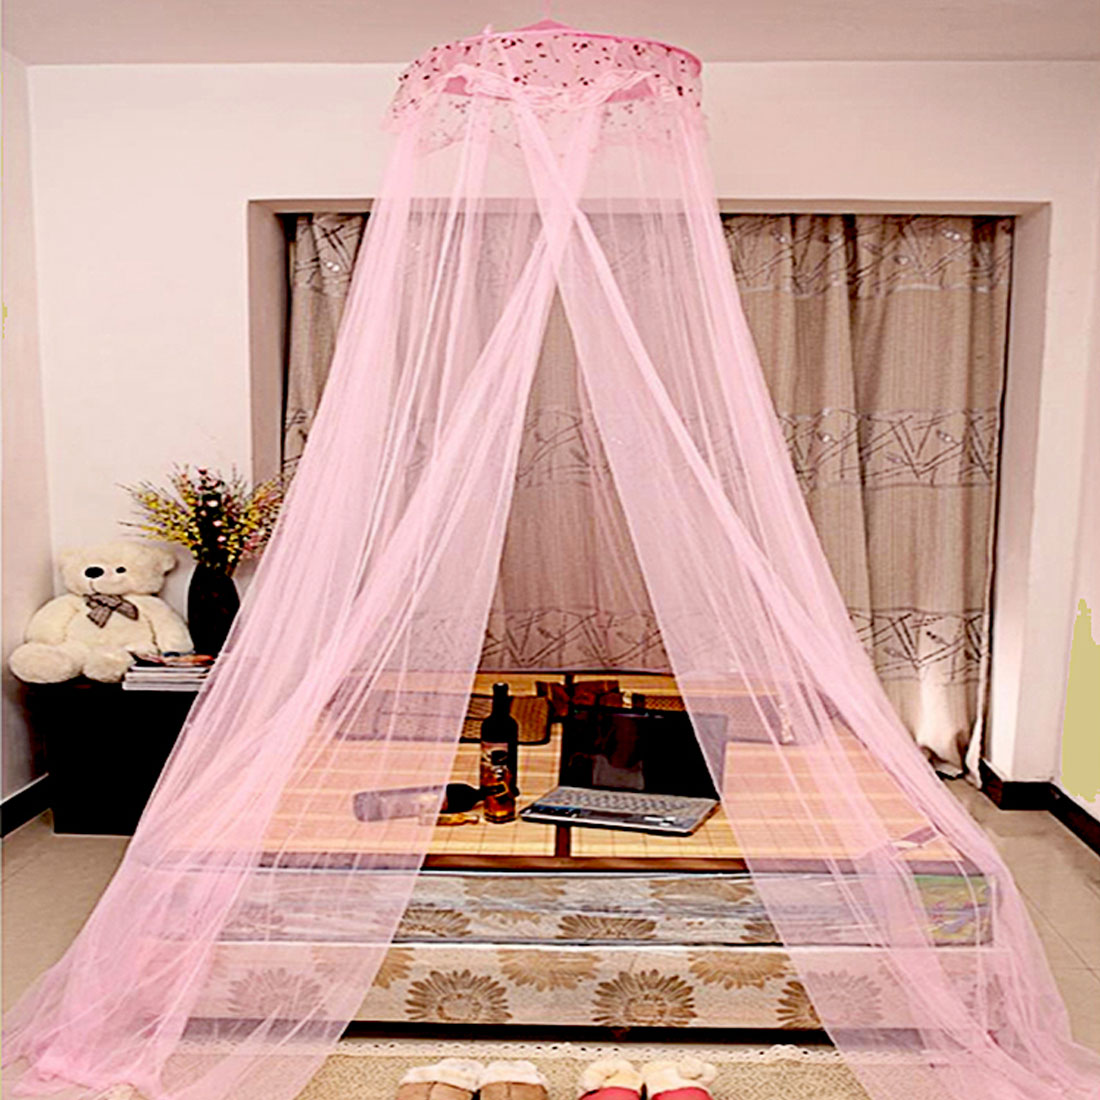 Unique Bargains Bedroom Dome Shaped Bugs  Mosquito Net Bed Canopy Pink